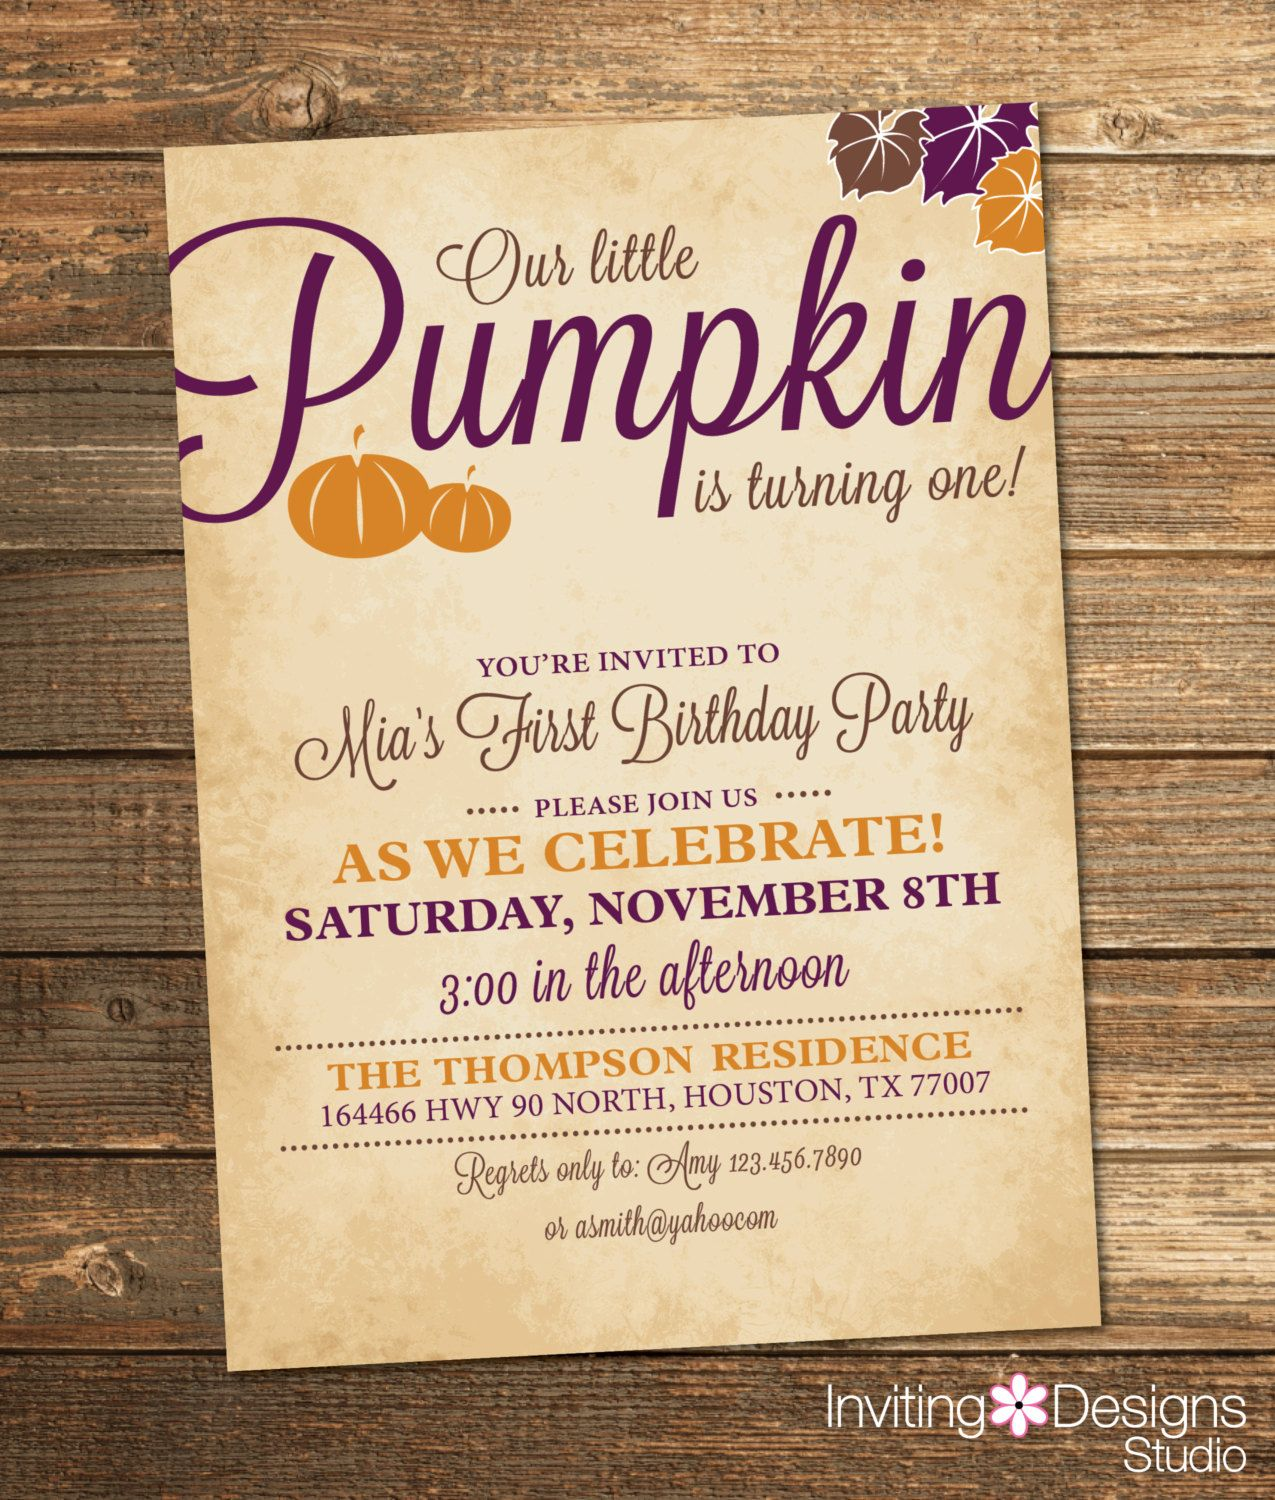 wording0th birthday party invitation%0A Little Pumpkin Birthday Invitation  Fall Birthday Party  Pumpkin Birthday   Girl First Birthday